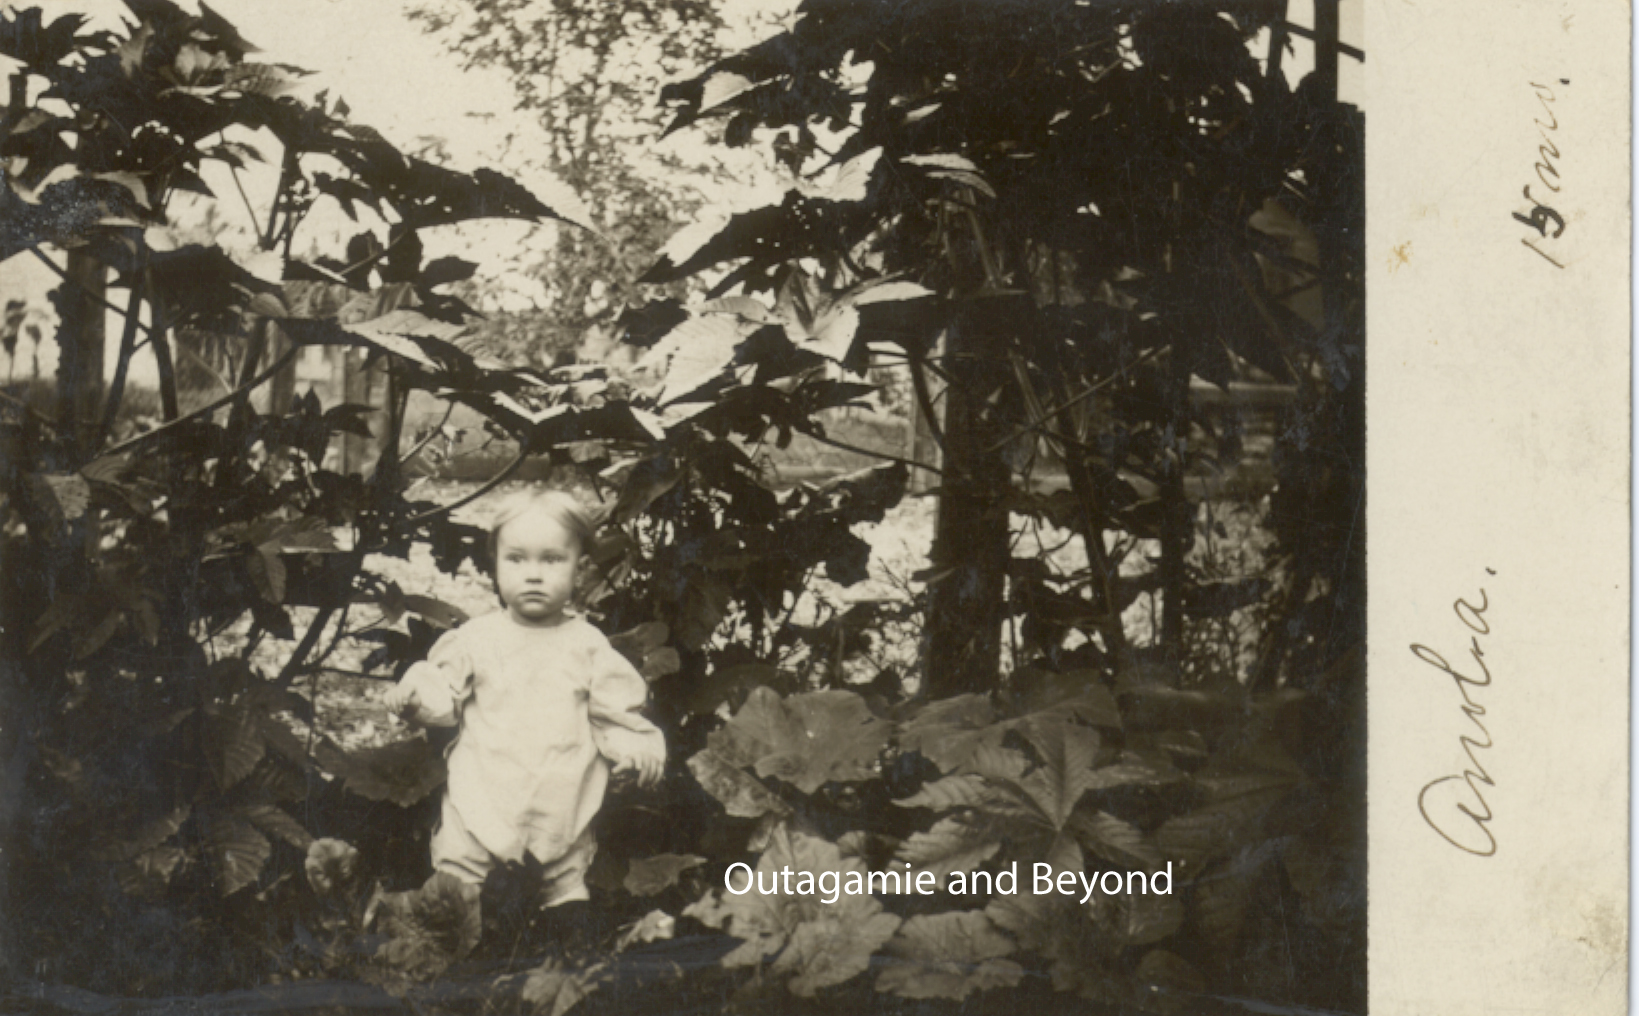 The Secret Garden | Outagamie and Beyond